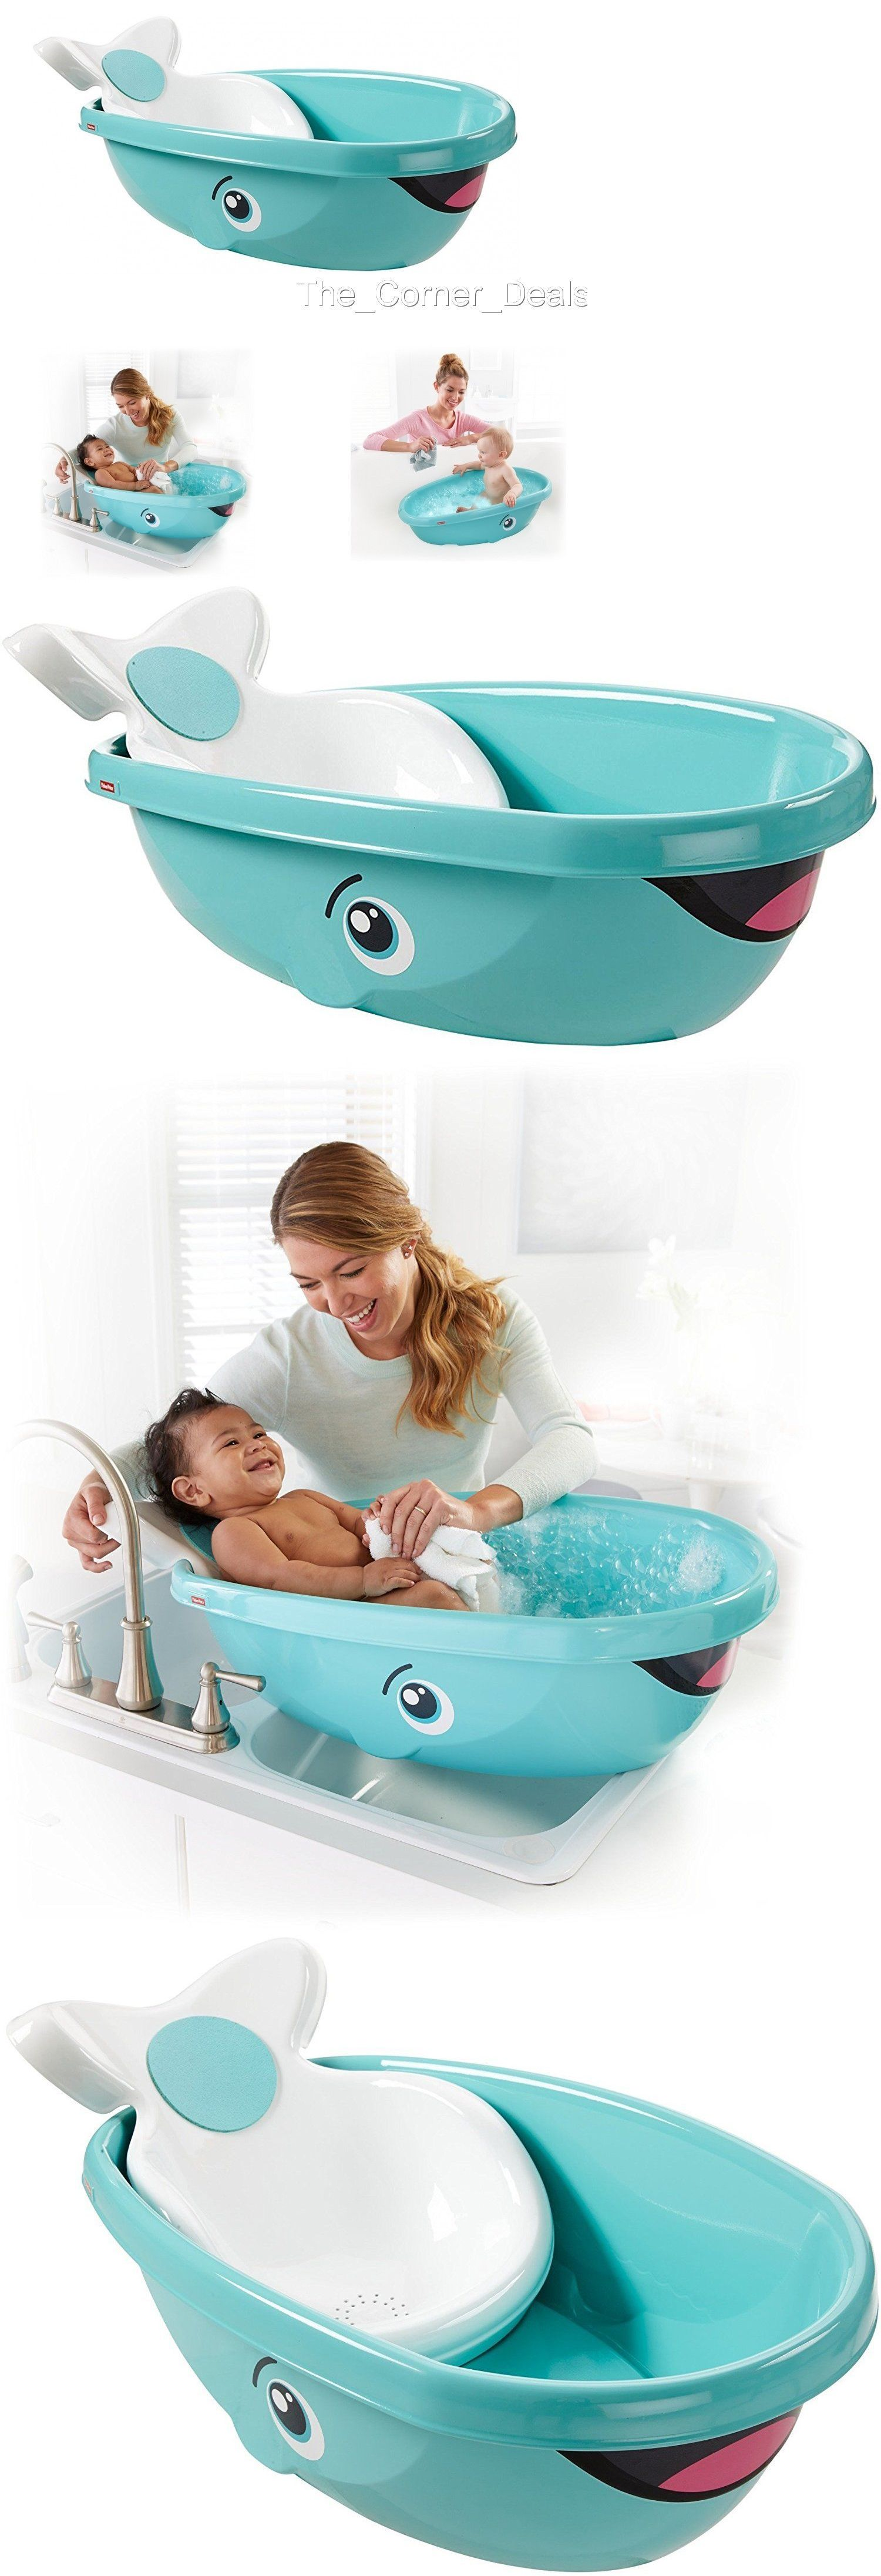 Bath Tubs 113814: Fisher Price Whale Baby Kids Toddler Newborn ...